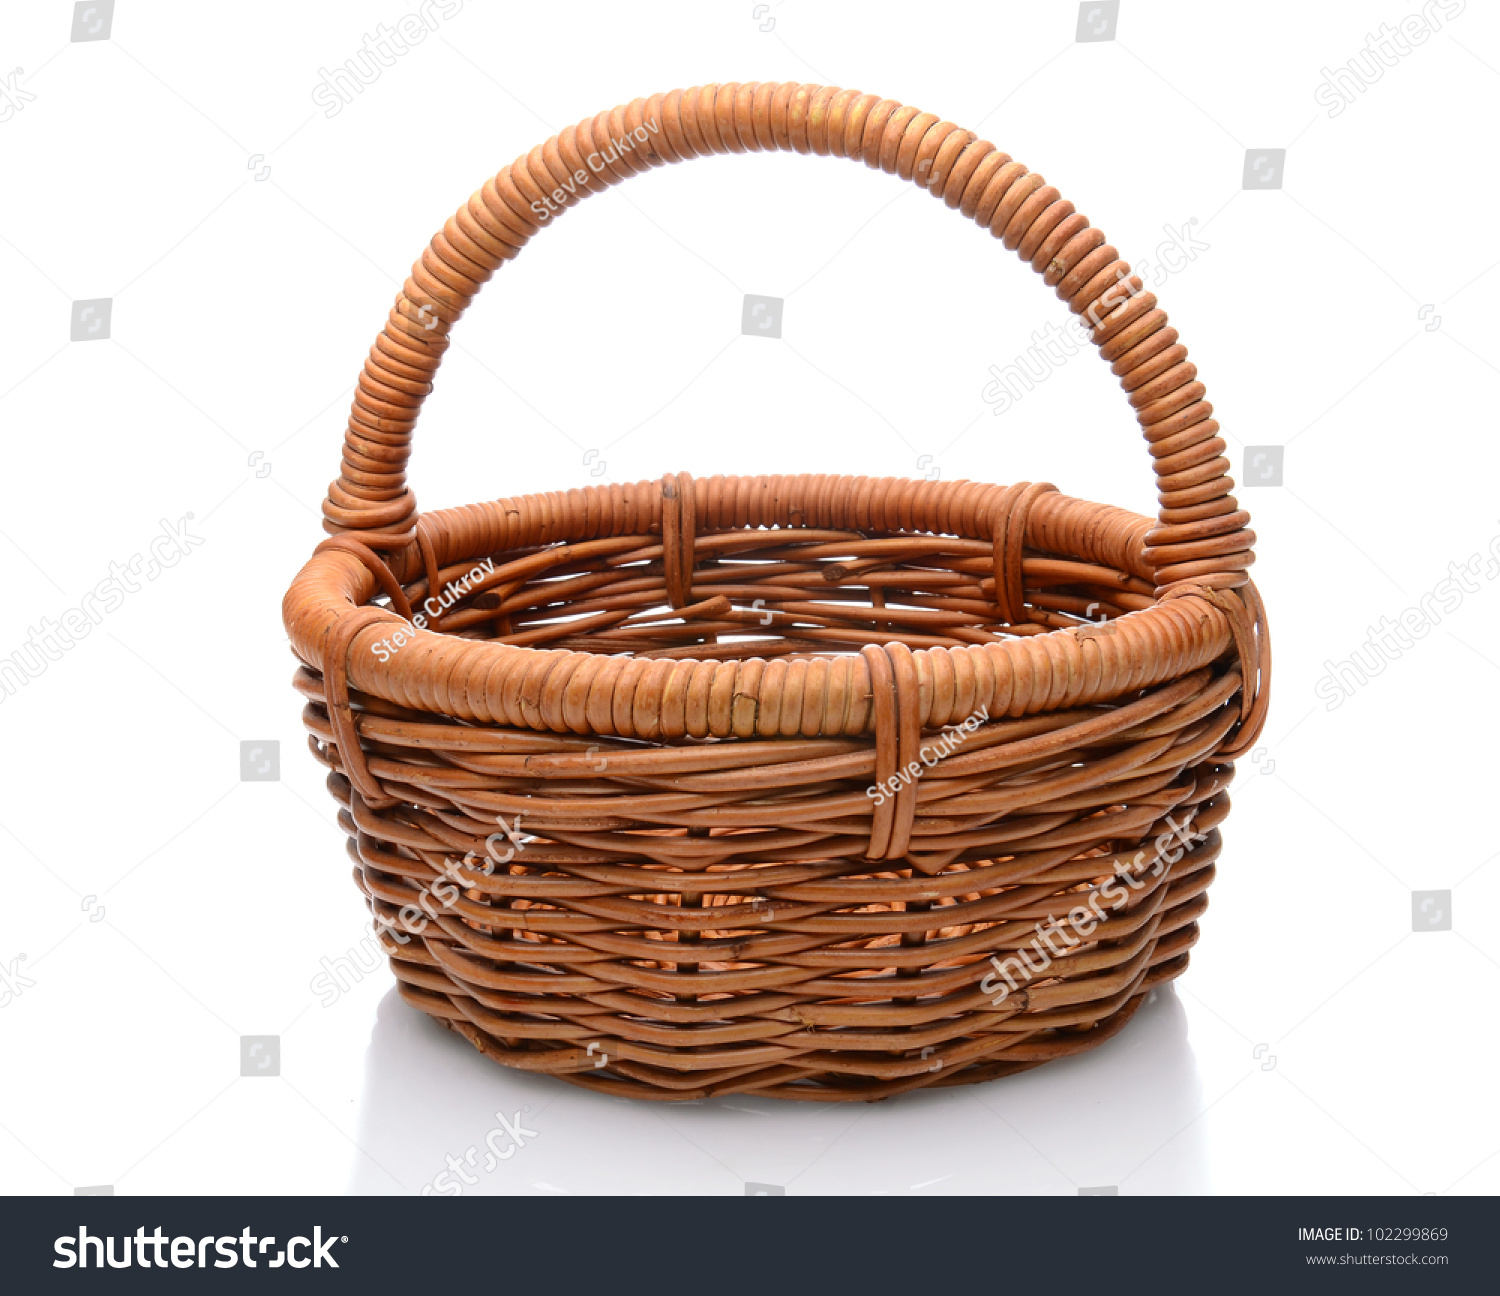 White wicker baskets with handle - Round Brown Wicker Basket With Handle Isolated On A White Background With Slight Reflection